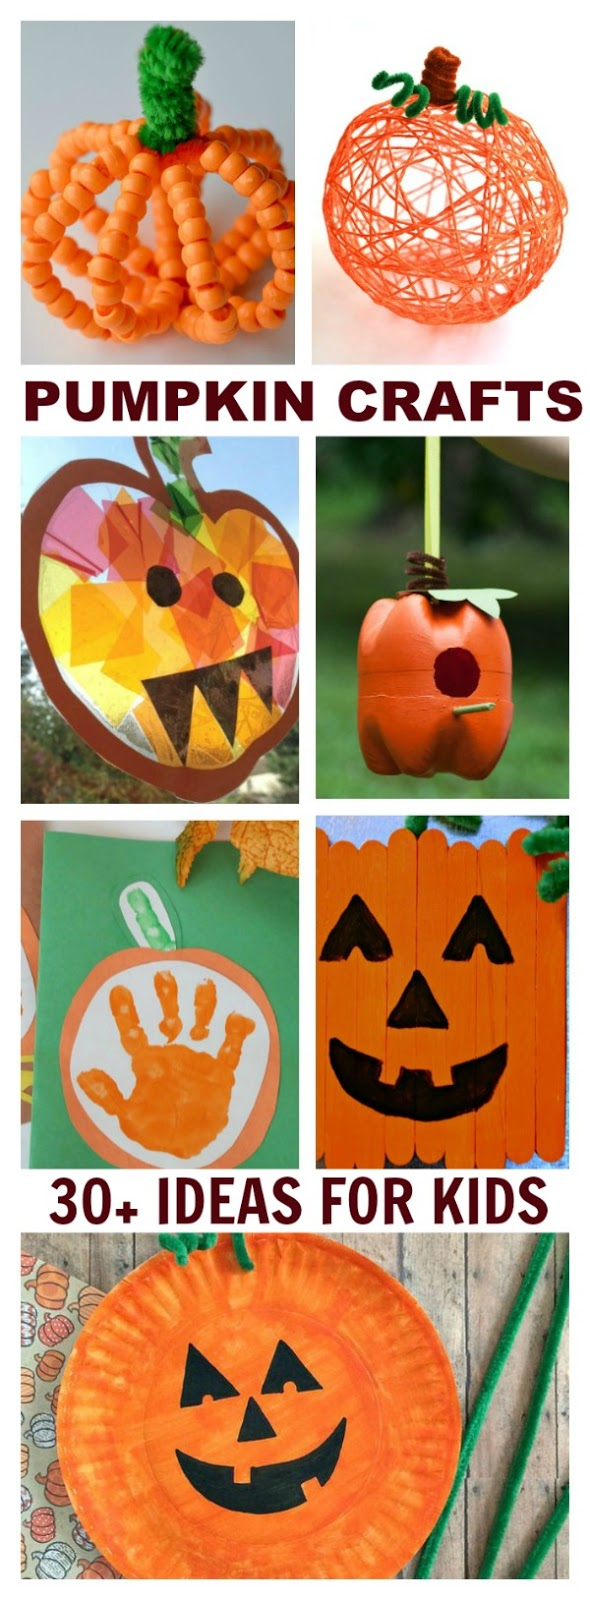 It's just a picture of Fabulous Pumpkin Crafts for Toddlers